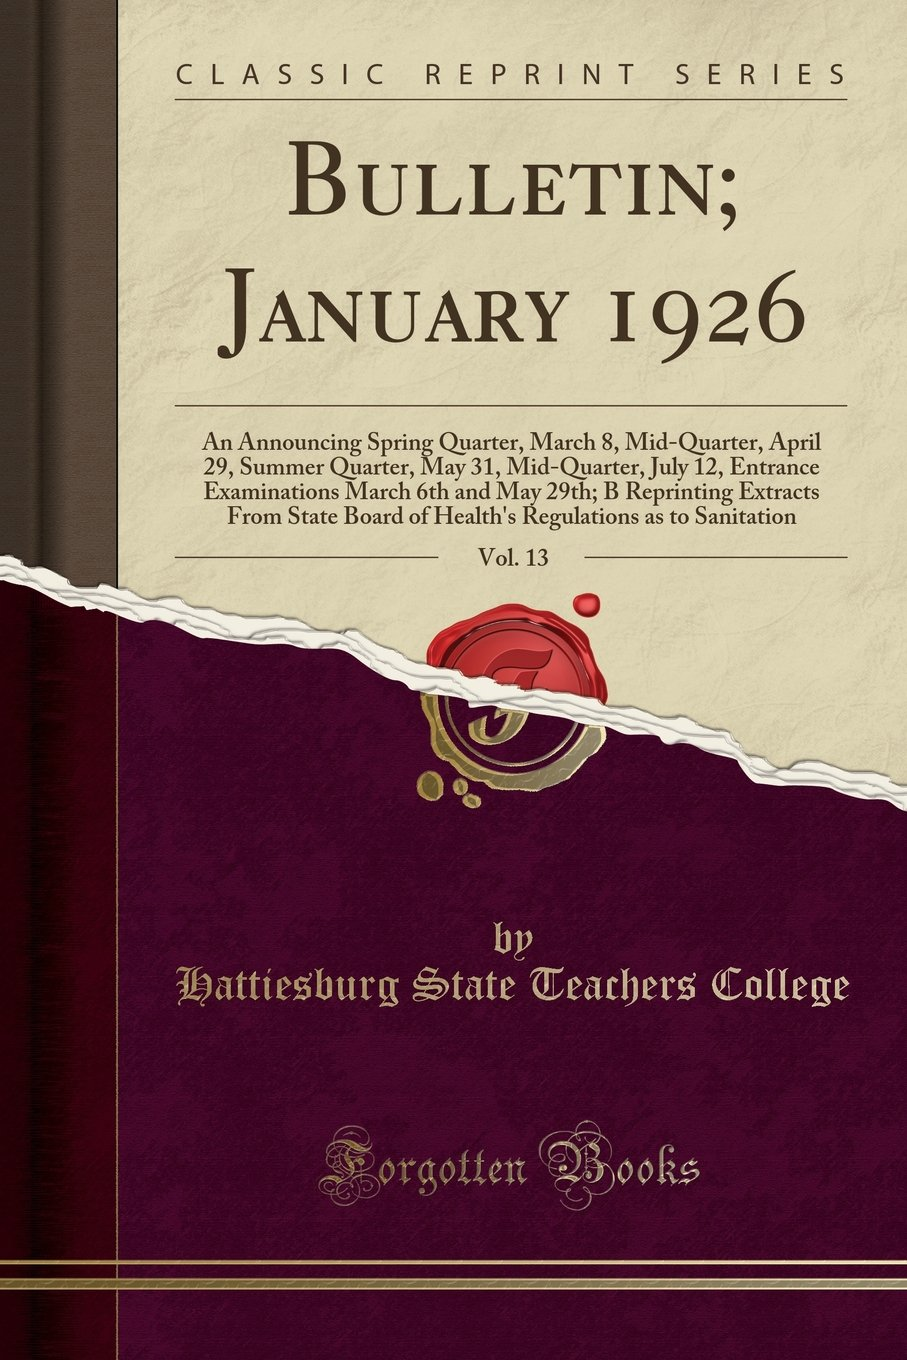 Download Bulletin; January 1926, Vol. 13: An Announcing Spring Quarter, March 8, Mid-Quarter, April 29, Summer Quarter, May 31, Mid-Quarter, July 12, Entrance ... State Board of Health's Regulations as to pdf